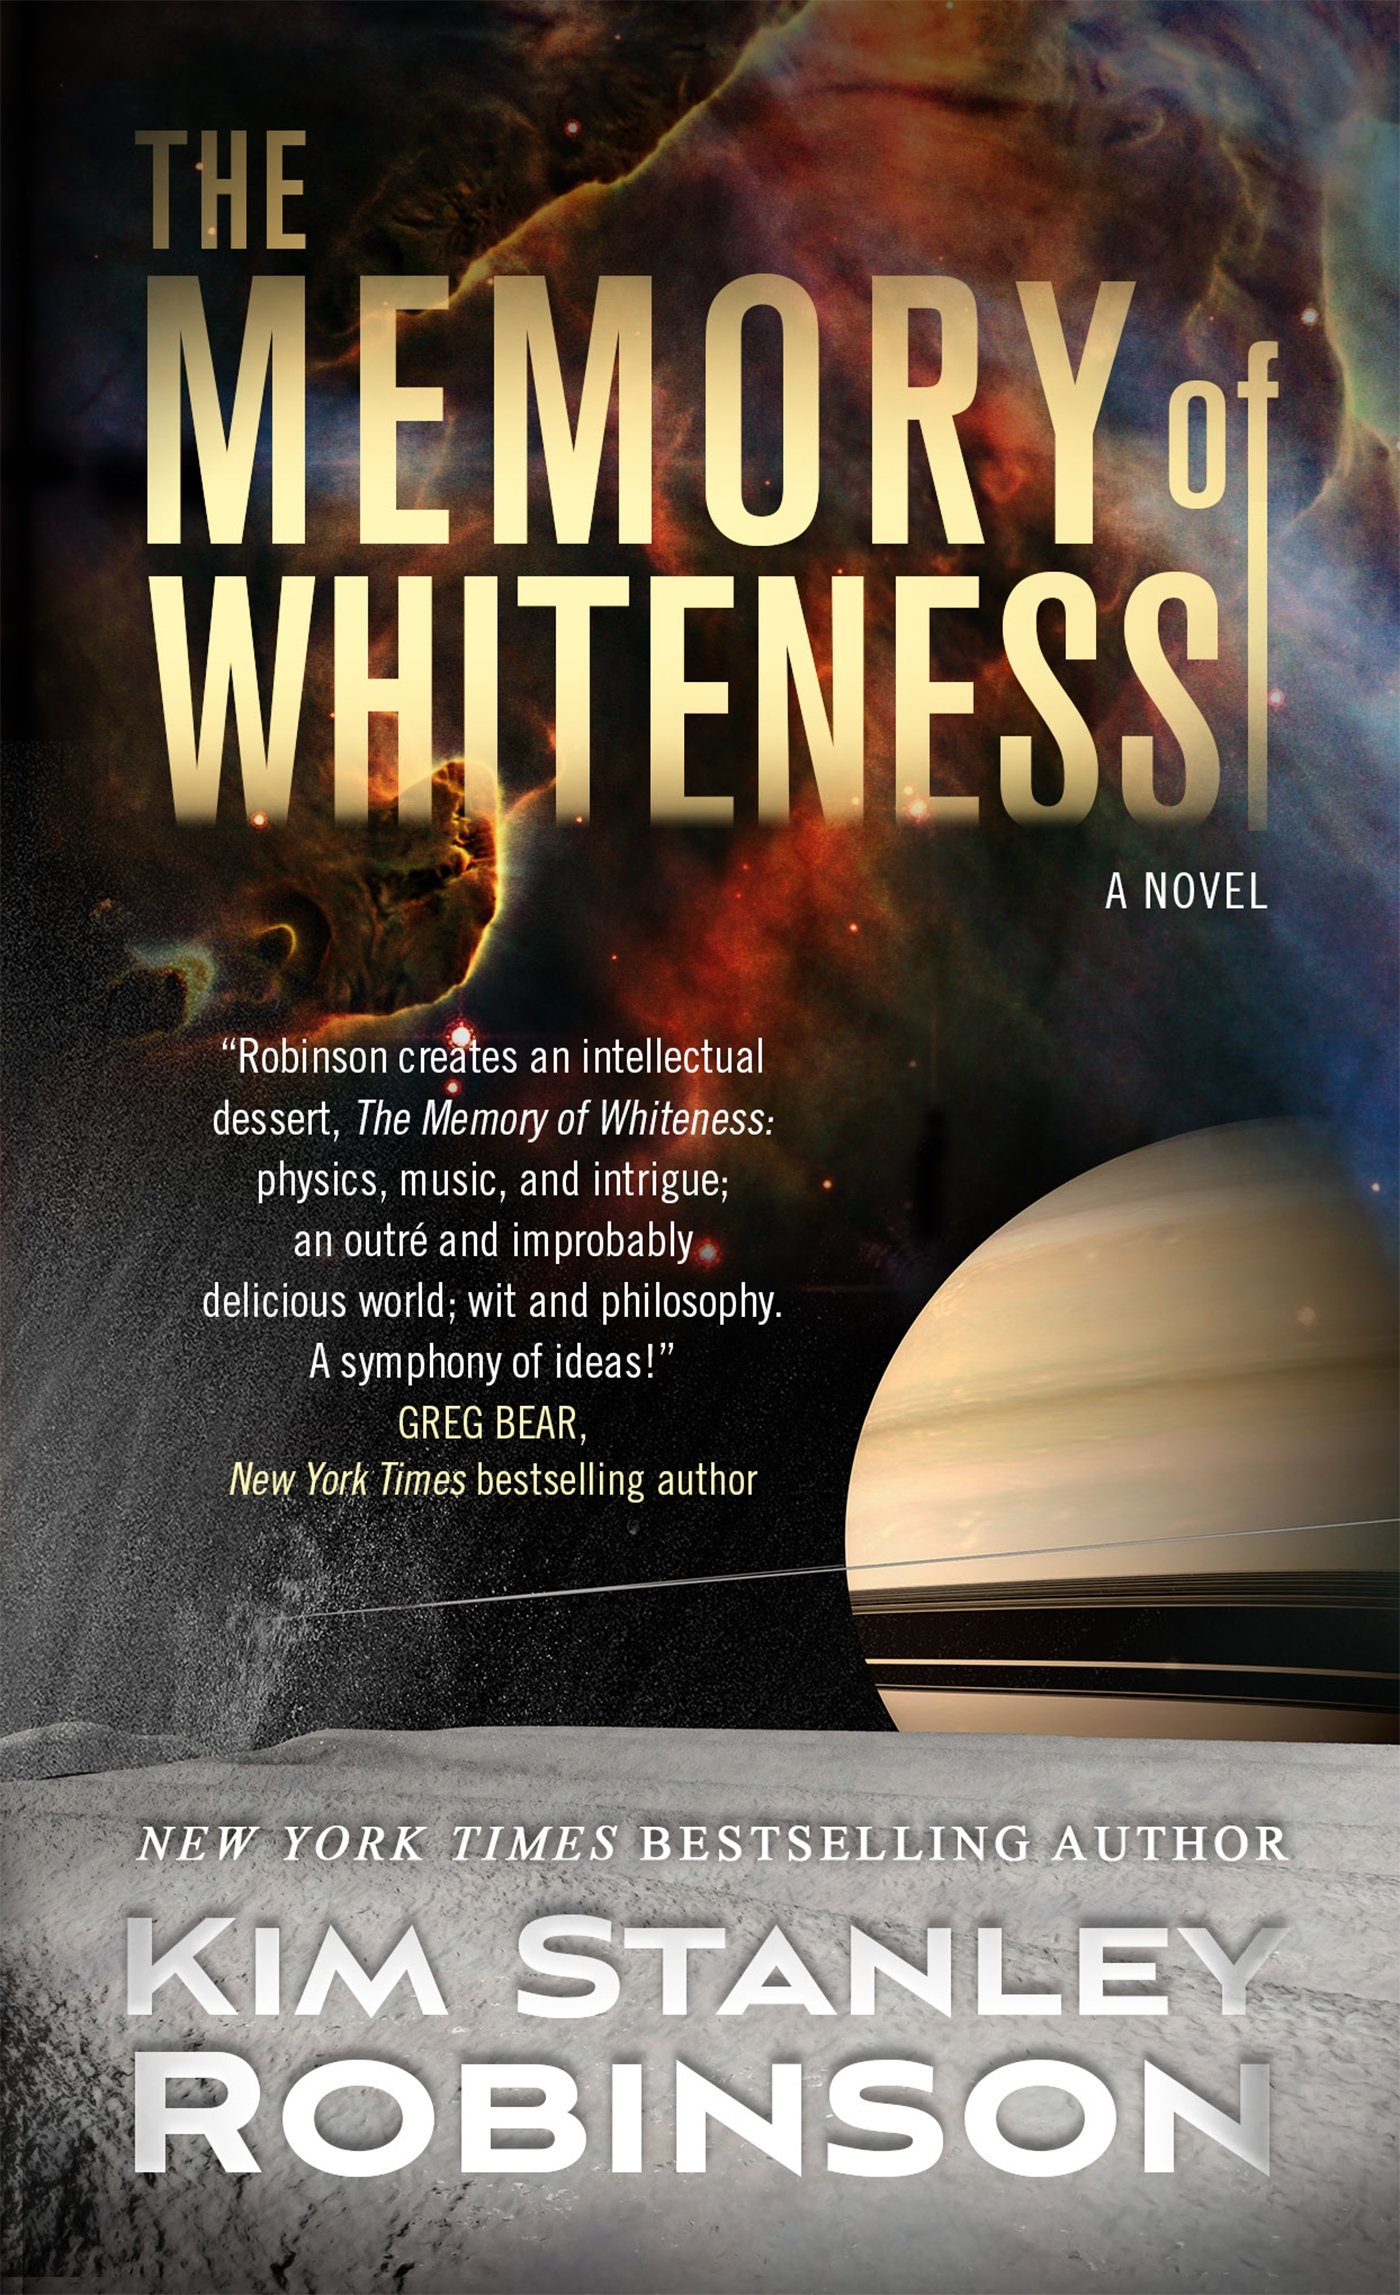 The memory of whiteness a scientific romance kim stanley robinson the memory of whiteness a scientific romance kim stanley robinson 9780765391988 amazon books fandeluxe Images